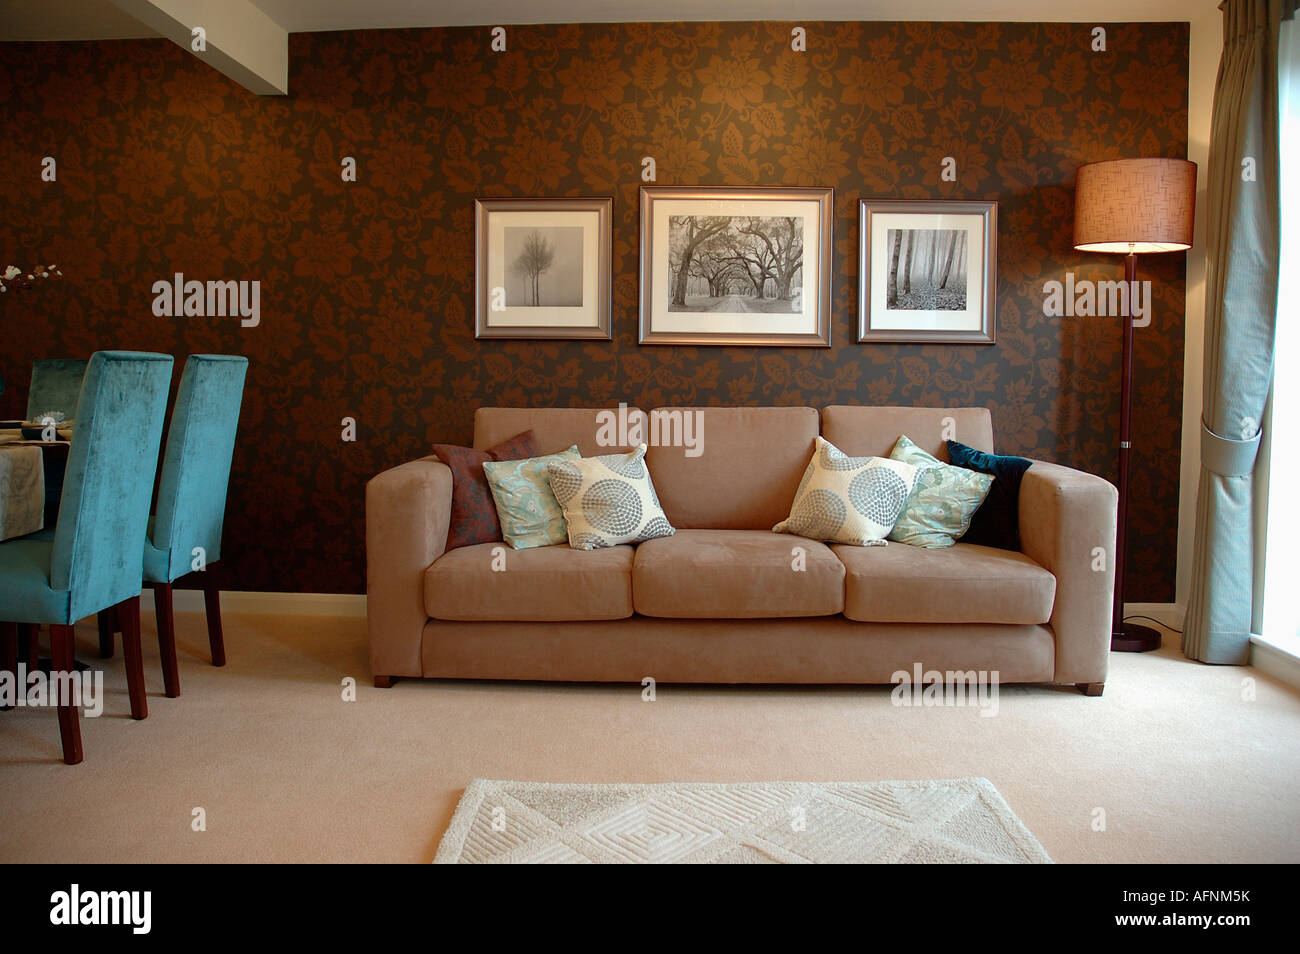 Modern Apartment Livingroom With Patterned Brown Wallpaper And Stock